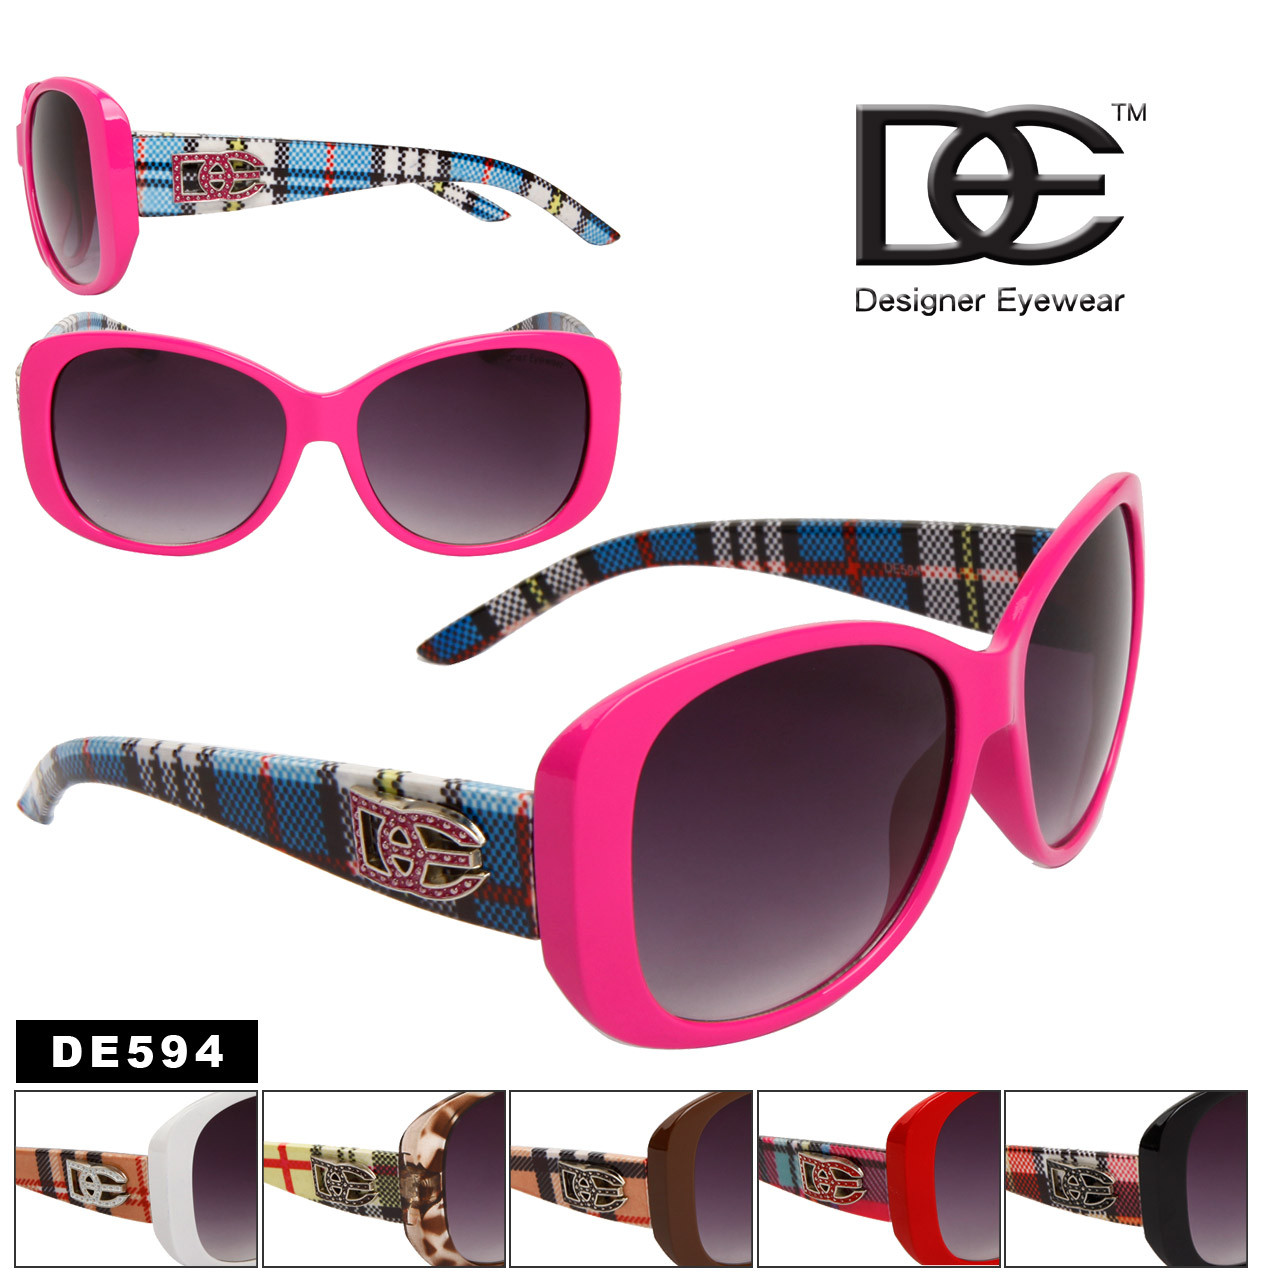 DE™ Women's Fashion Sunglasses Wholesale - Style # DE594